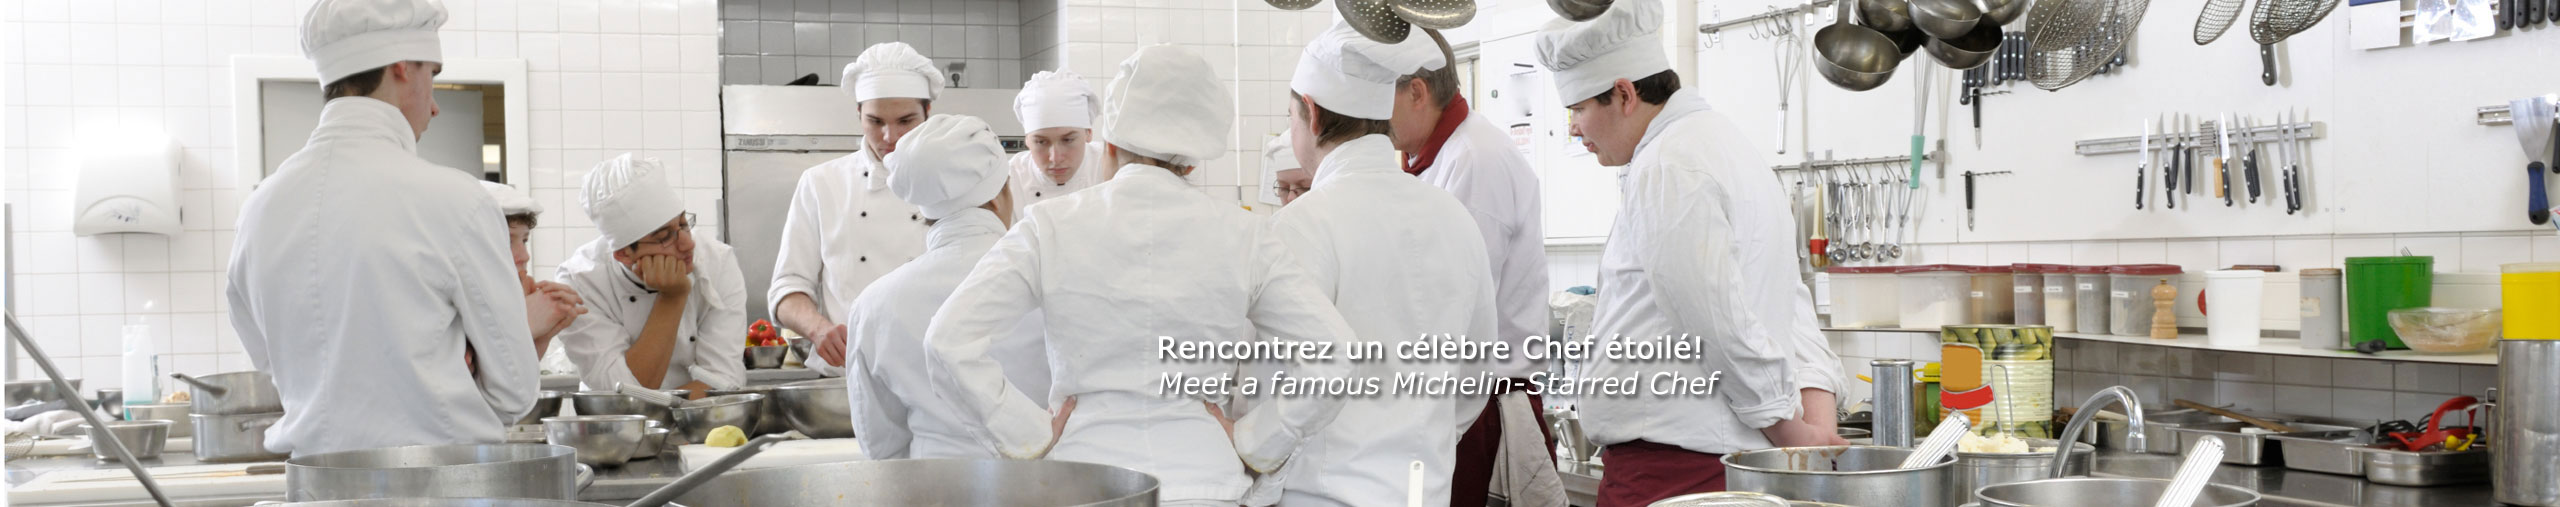 Meet a famous Michelin-starred Chef, gastronomy paris tour